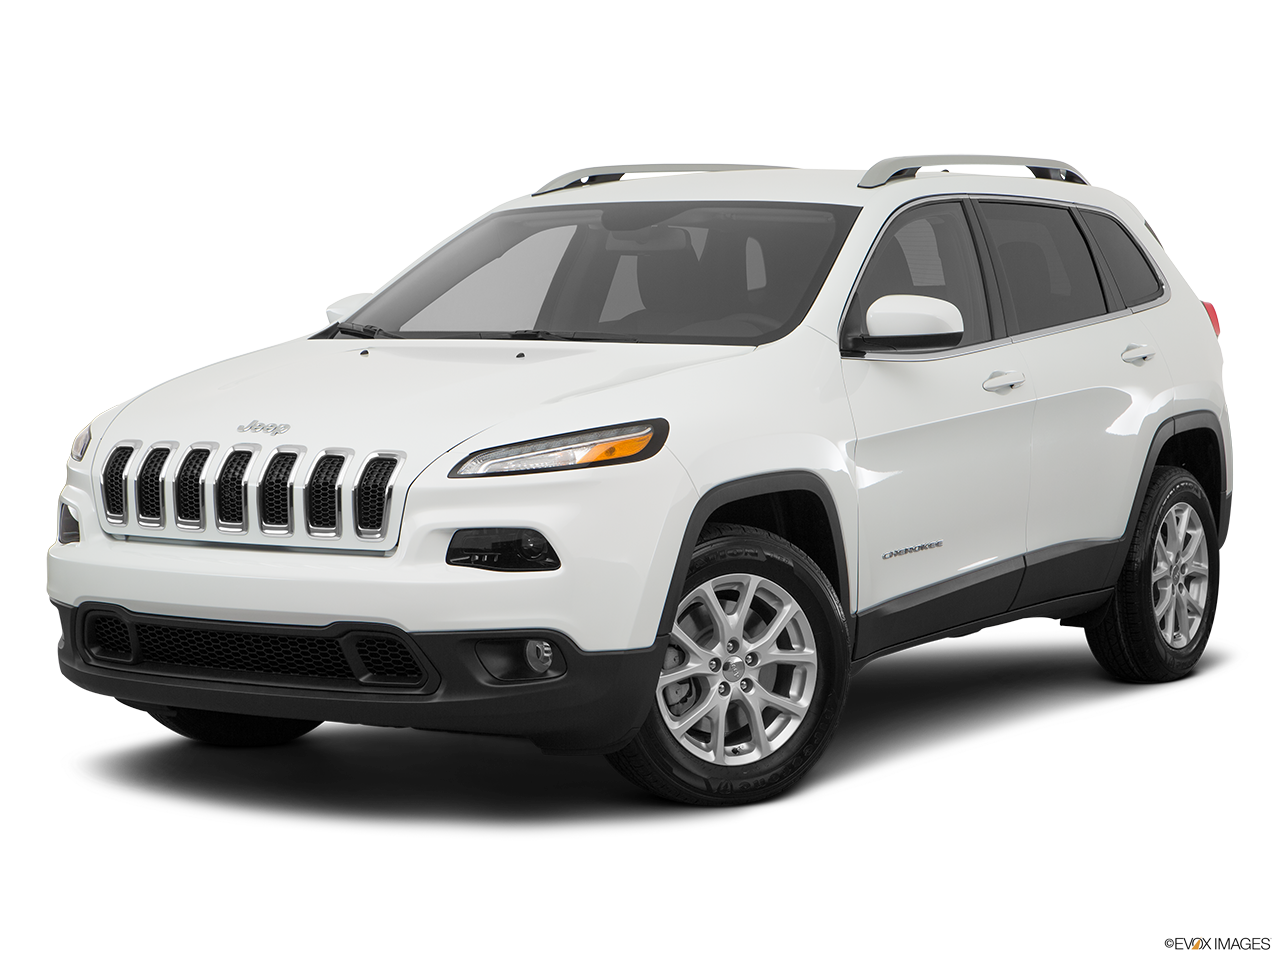 Test Drive A 2017 Jeep Cherokee at Carl Burger Dodge Chrysler Jeep Ram World in La Mesa